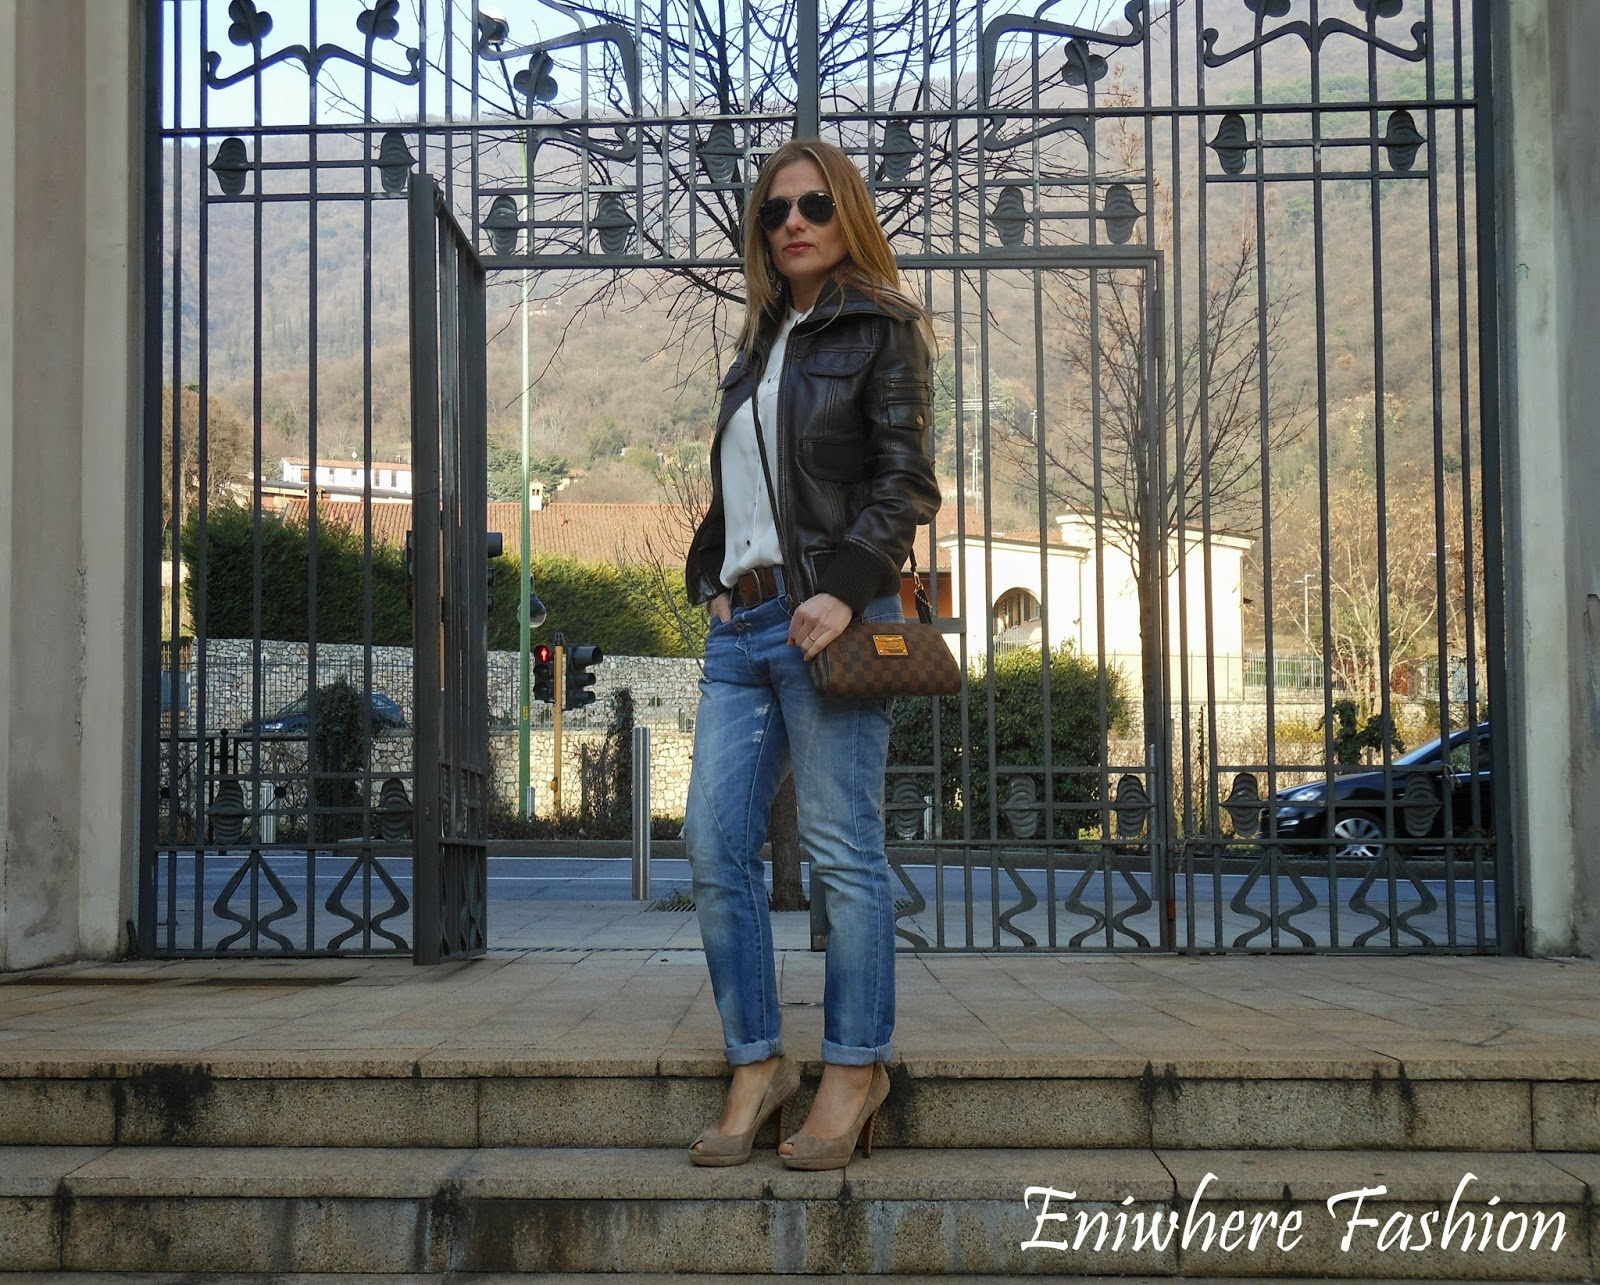 Eniwhere Fashion Top Gun Aviator Ray Ban